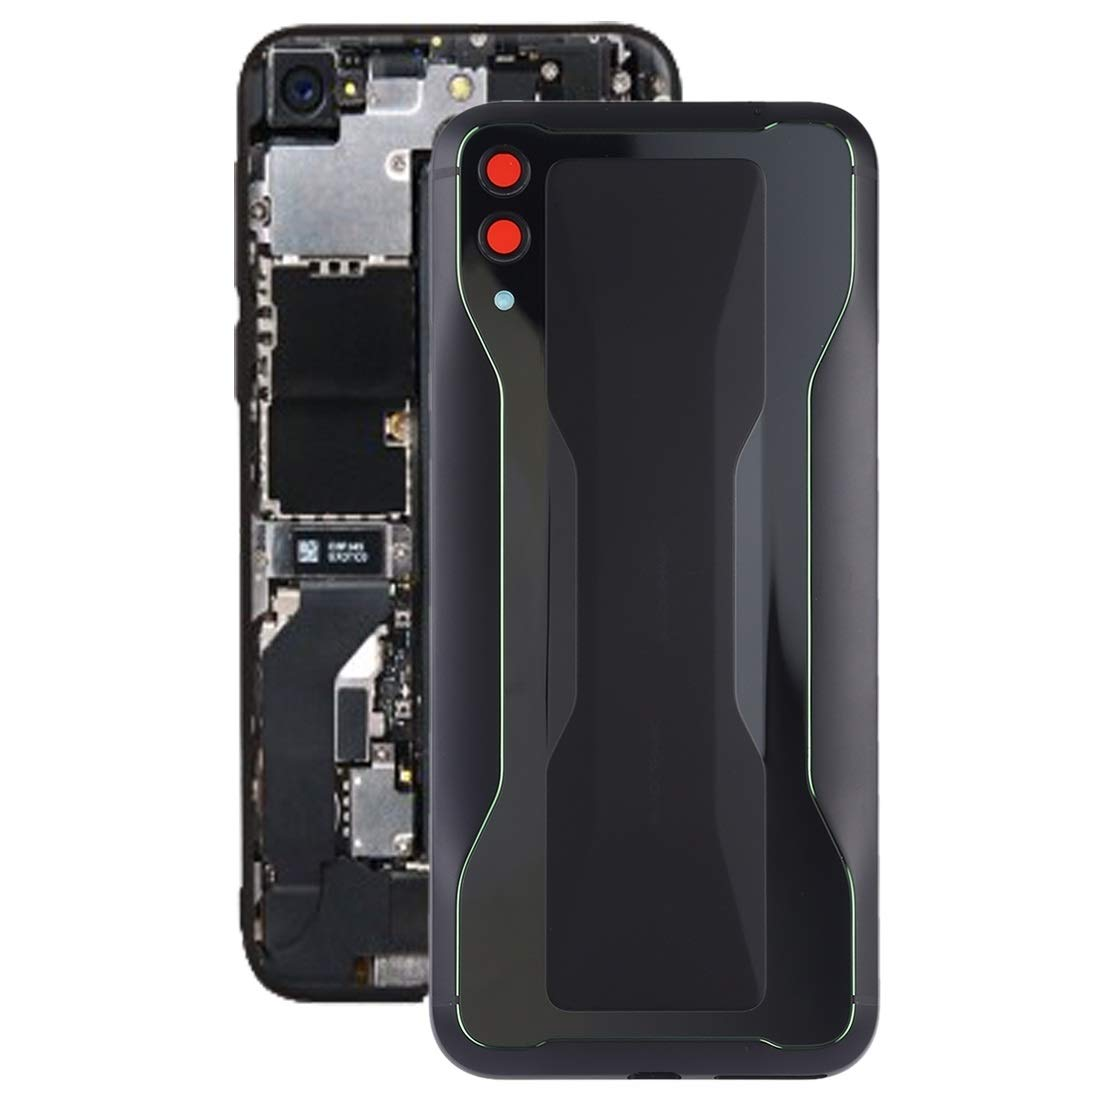 YUANSHIHUI Mobile Accessories Battery Back Cover for Xiaomi Black Shark 2(Black) (Color : Black) by YUANSHIHUI